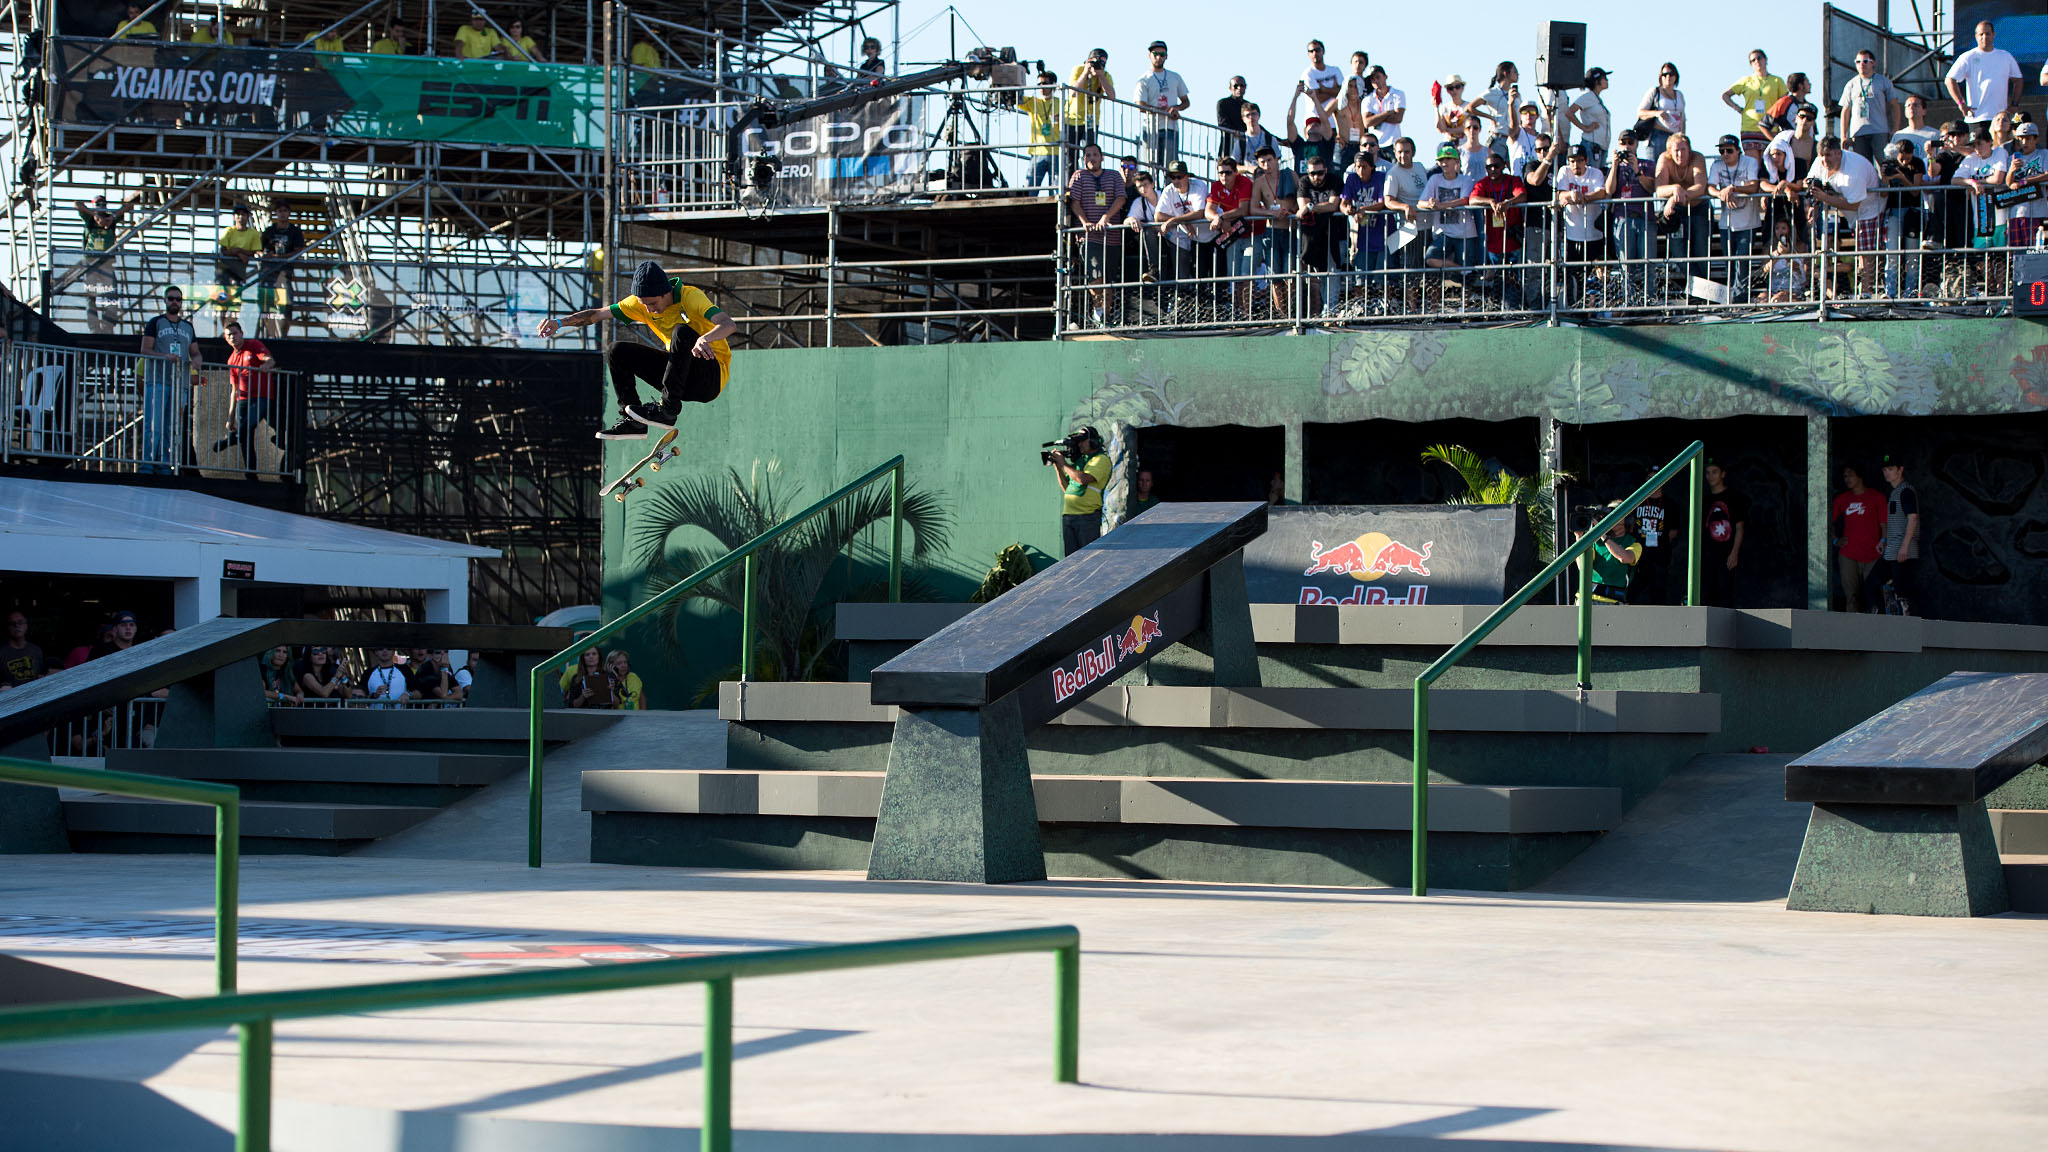 Brazilian Street League skateboarder Luan Oliveira was celebrated by the crowd at X Games Foz each time his name was announced during Street League at X Games finals. Oliveira went head to head with Street League reigning champ Nyjah Huston, and sent the crowd into a frenzy when he stomped this switch frontside flip.